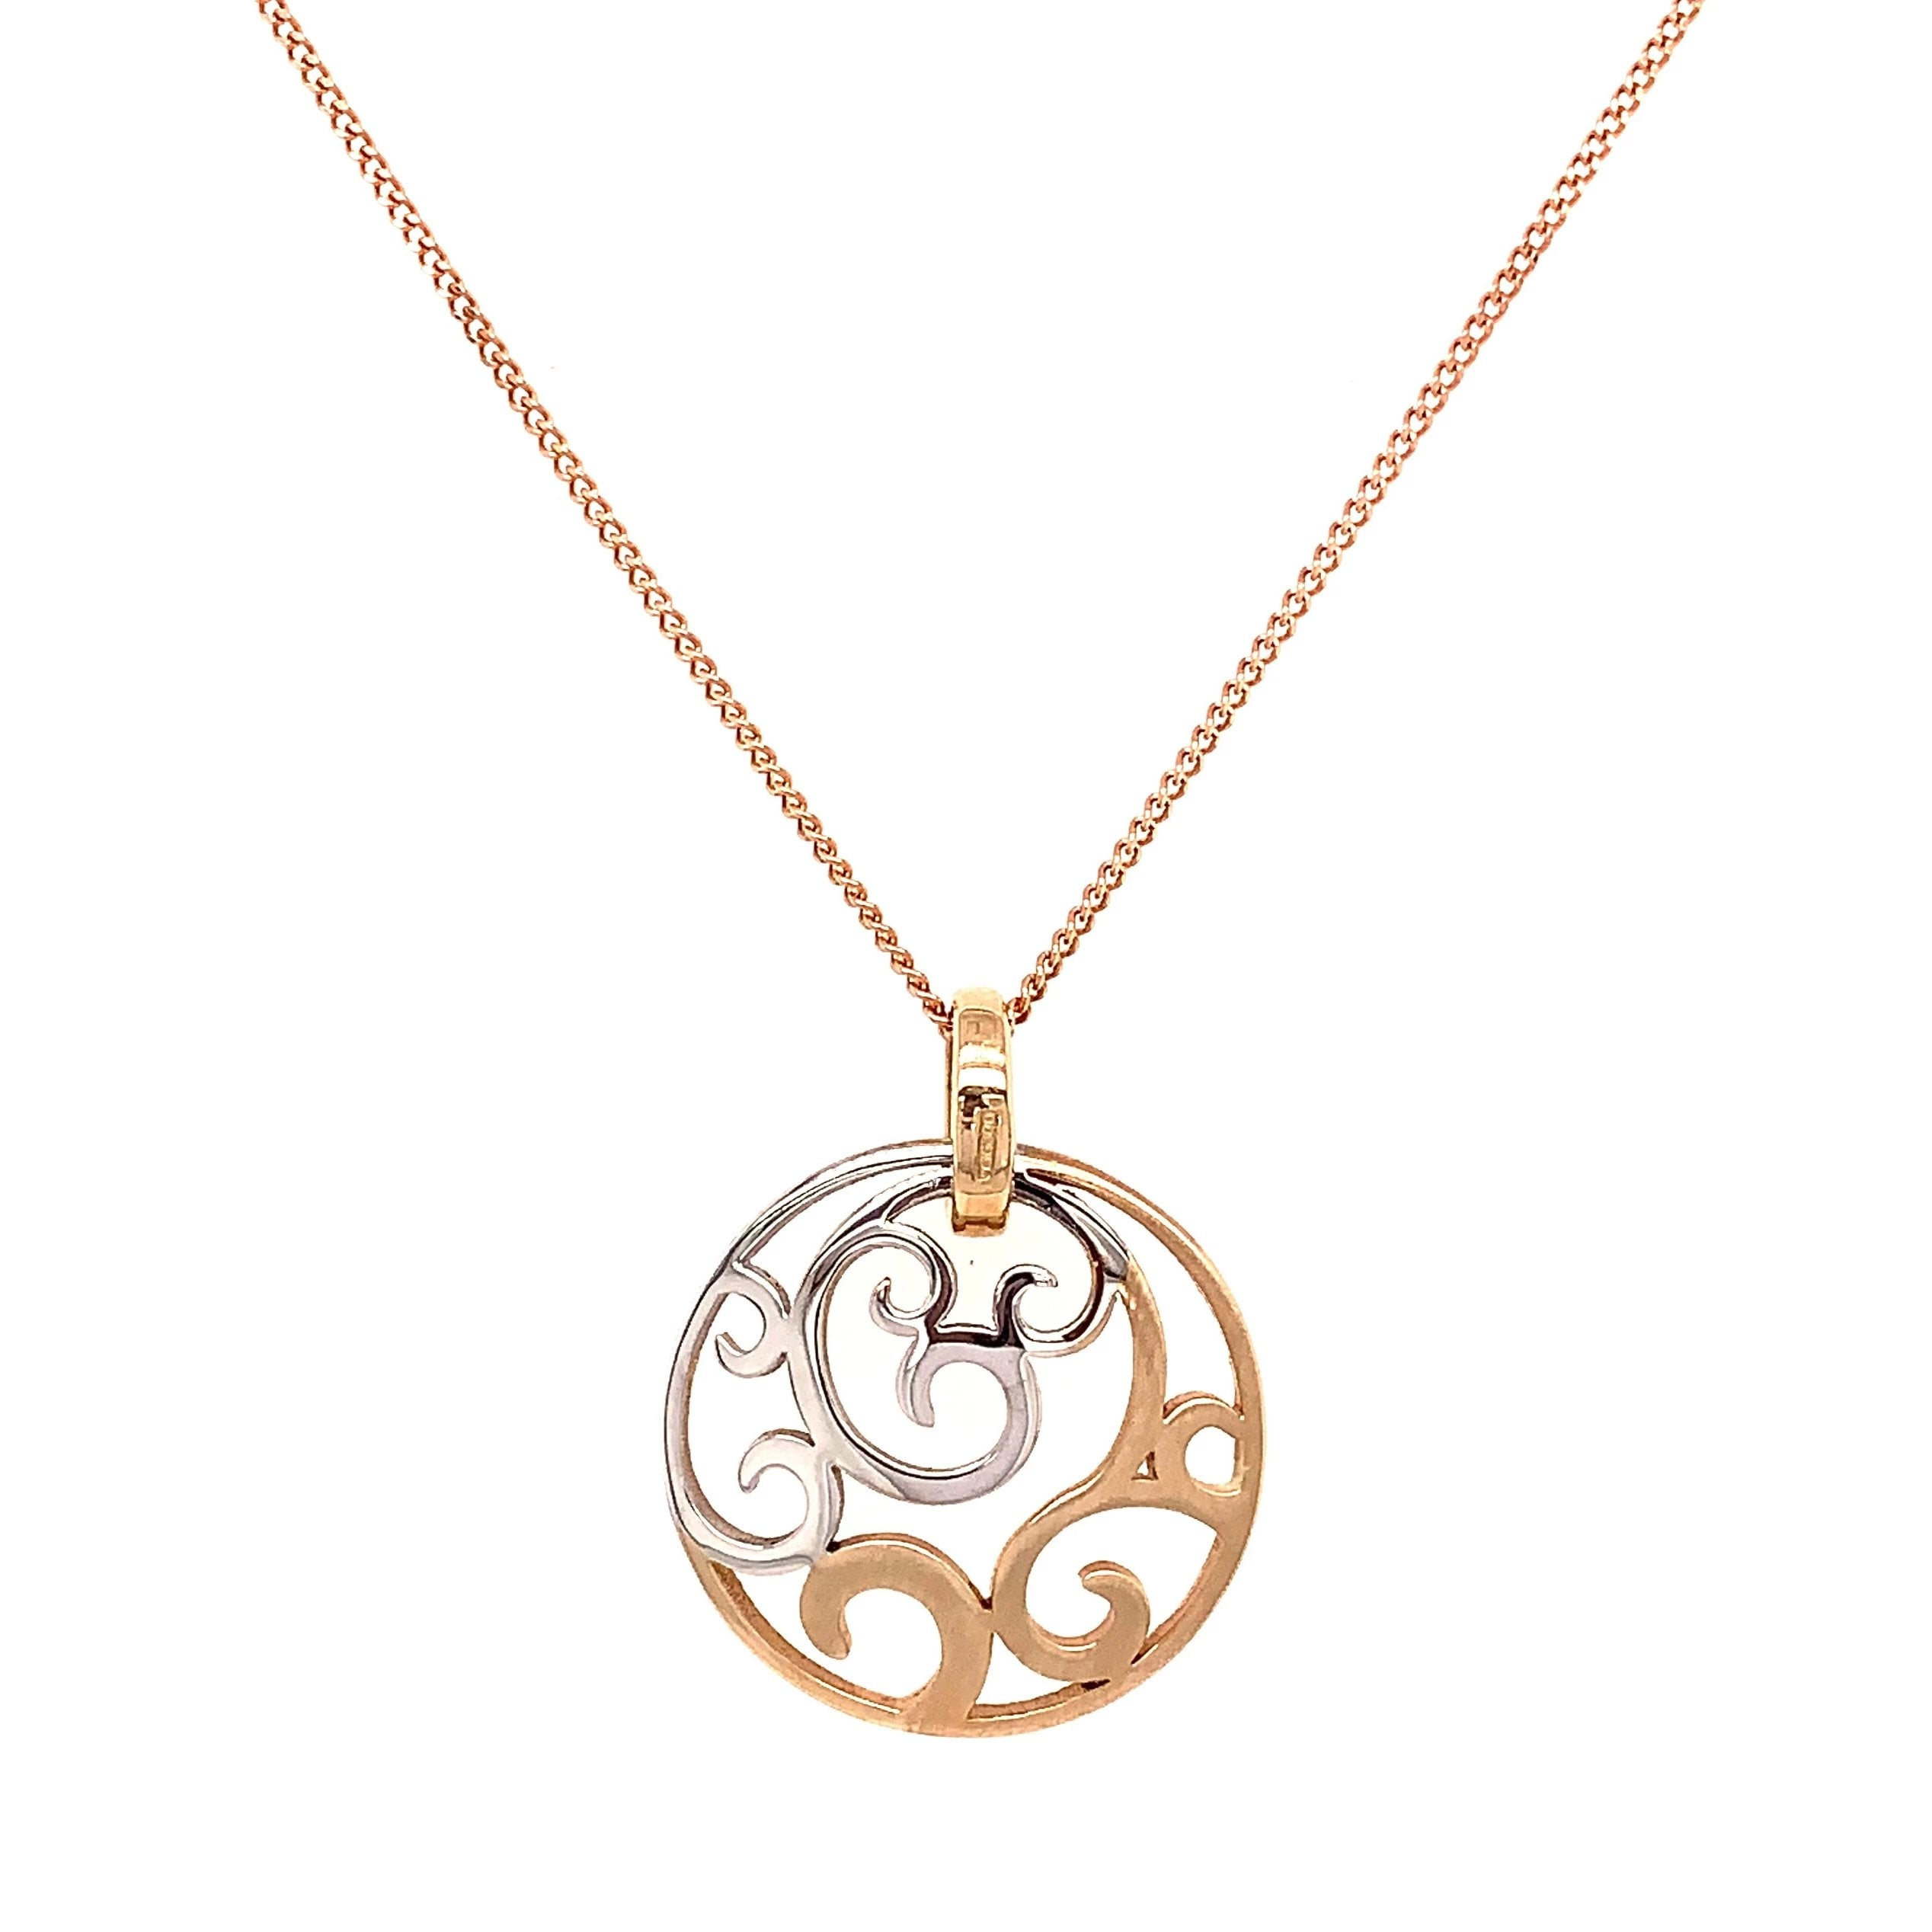 9ct White & Rose Gold Diamond Swirl Pendant & Chain - Andrew Scott